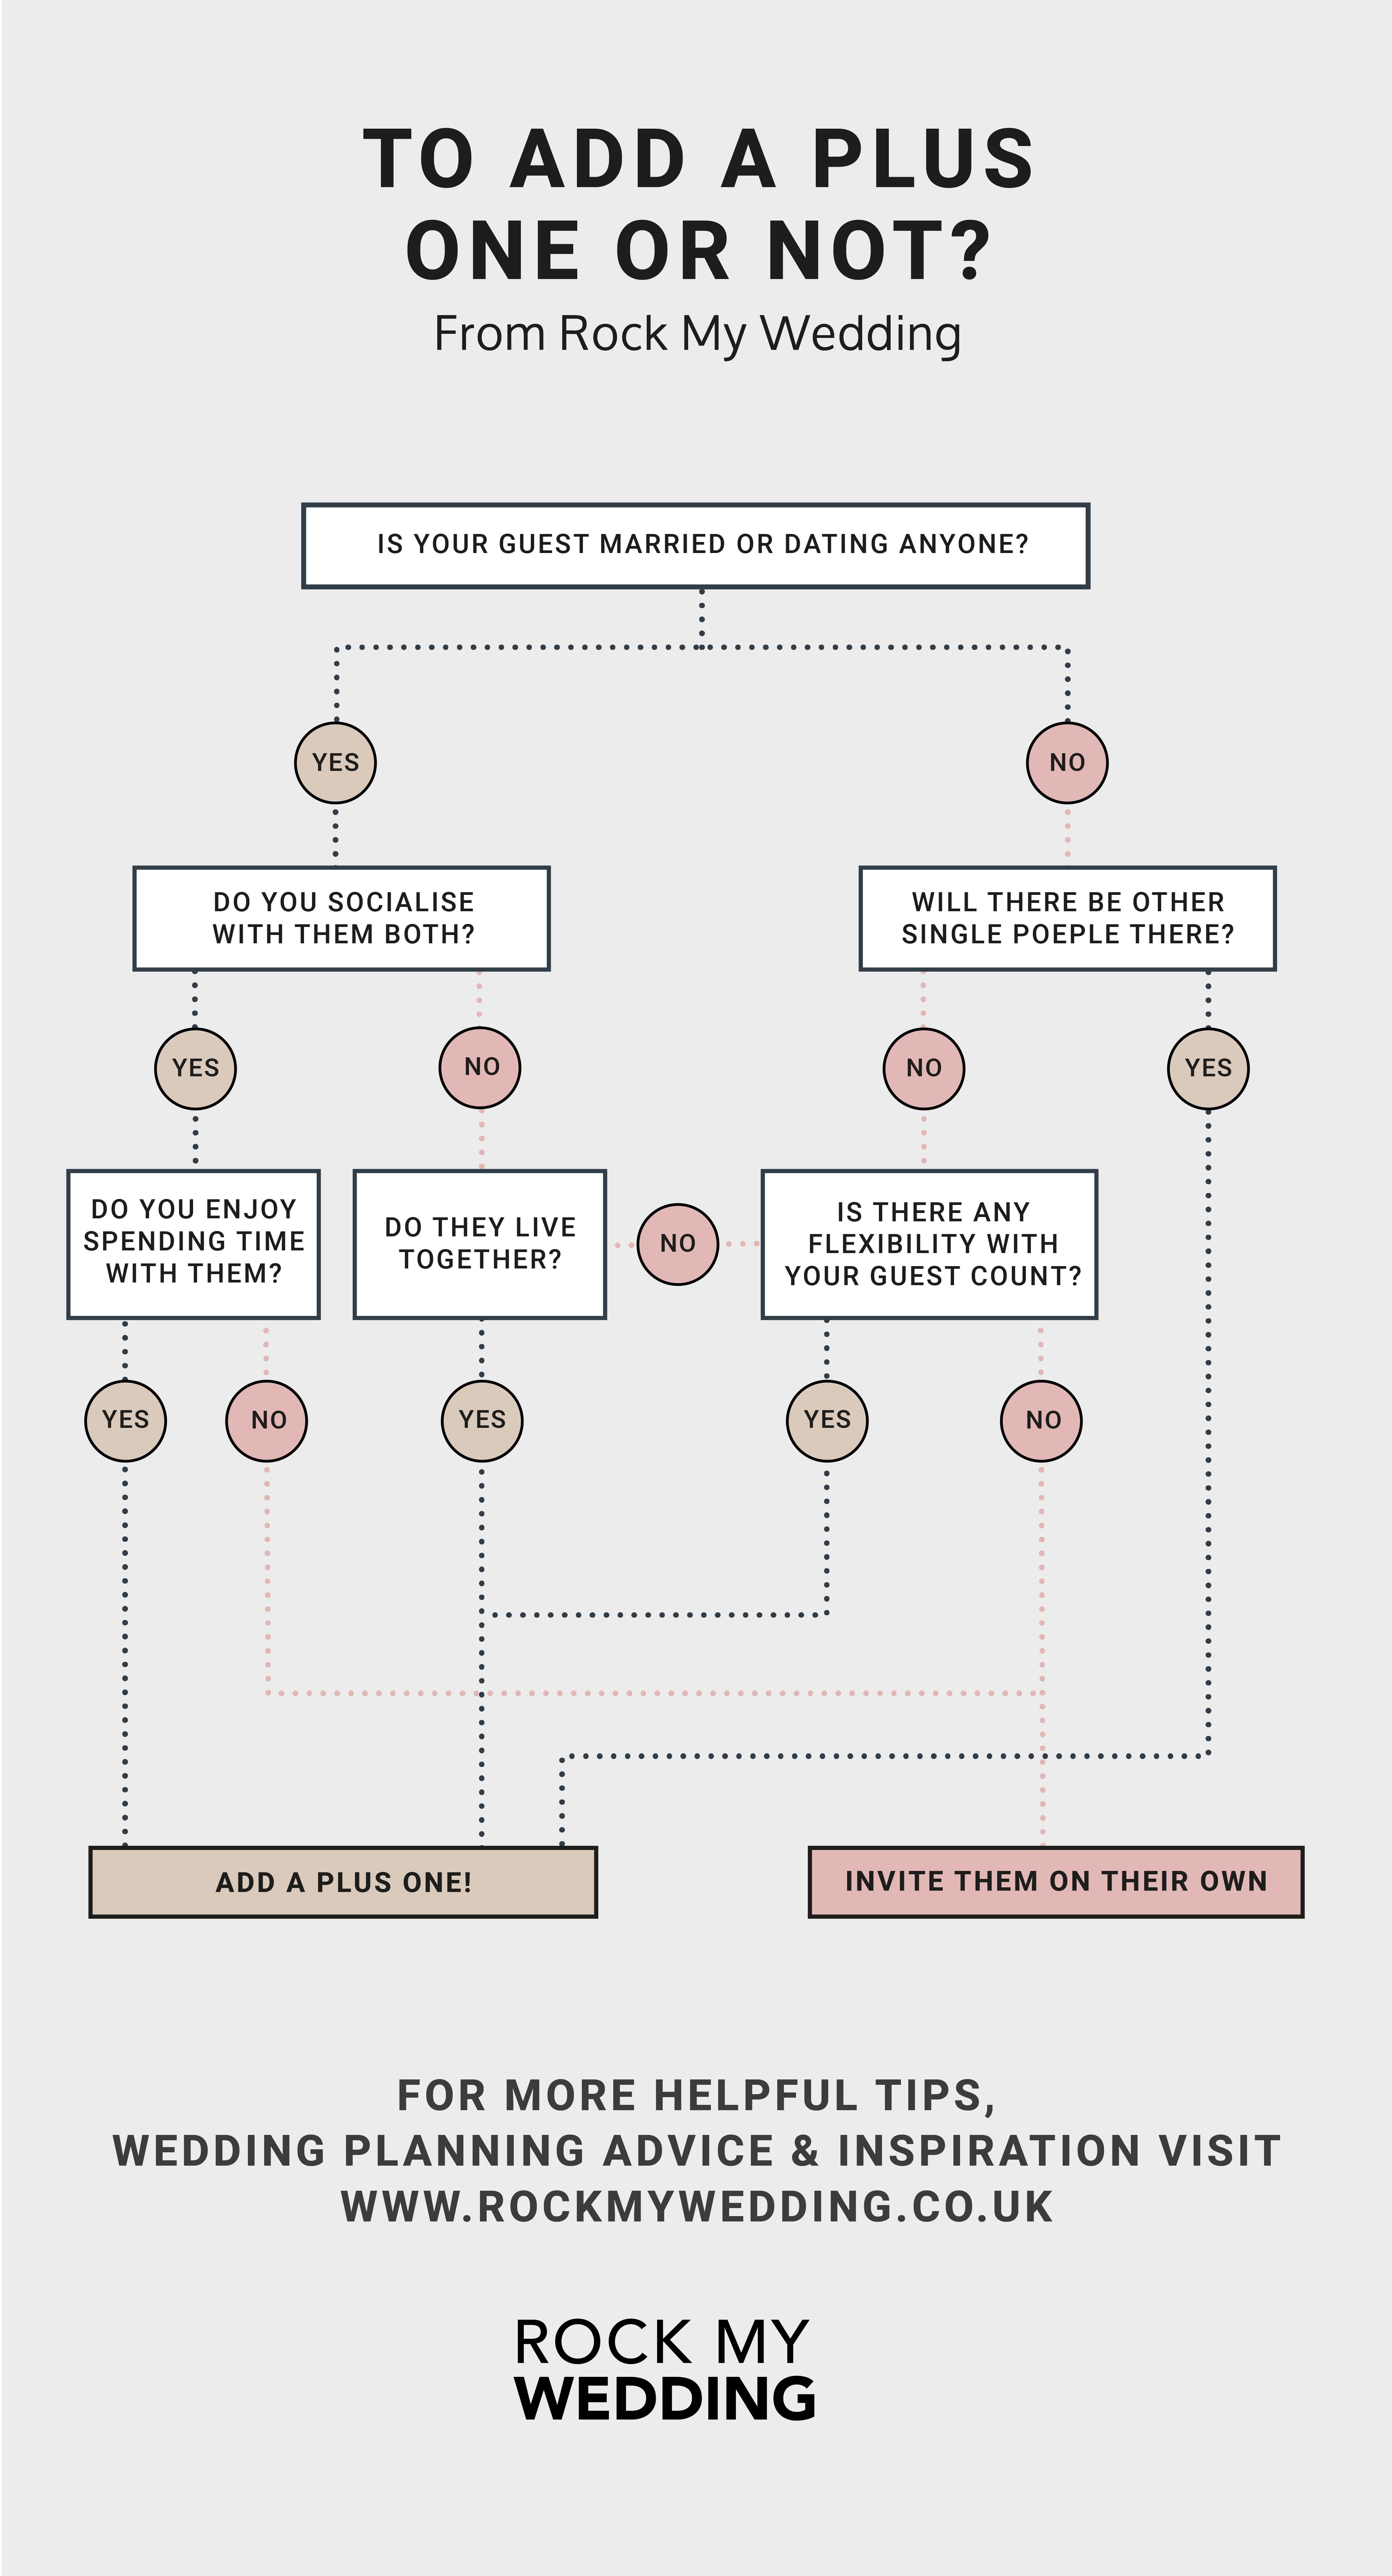 HOW TO CHOOSE YOUR WEDDING GUEST LIST_OCT_2020-02.png